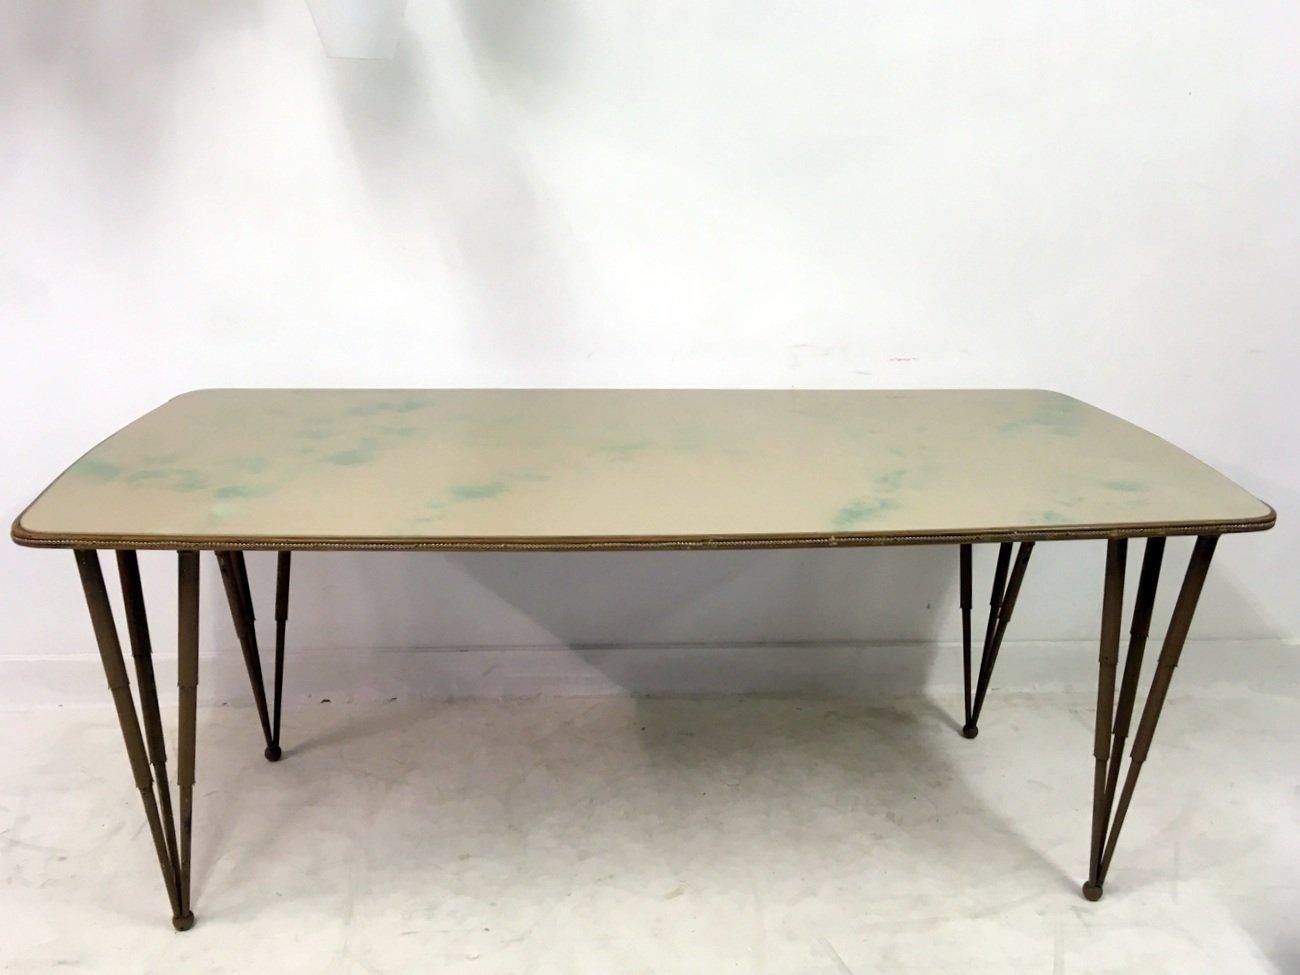 Italian Glass Topped Dining Table with Metal Legs 1950s for sale